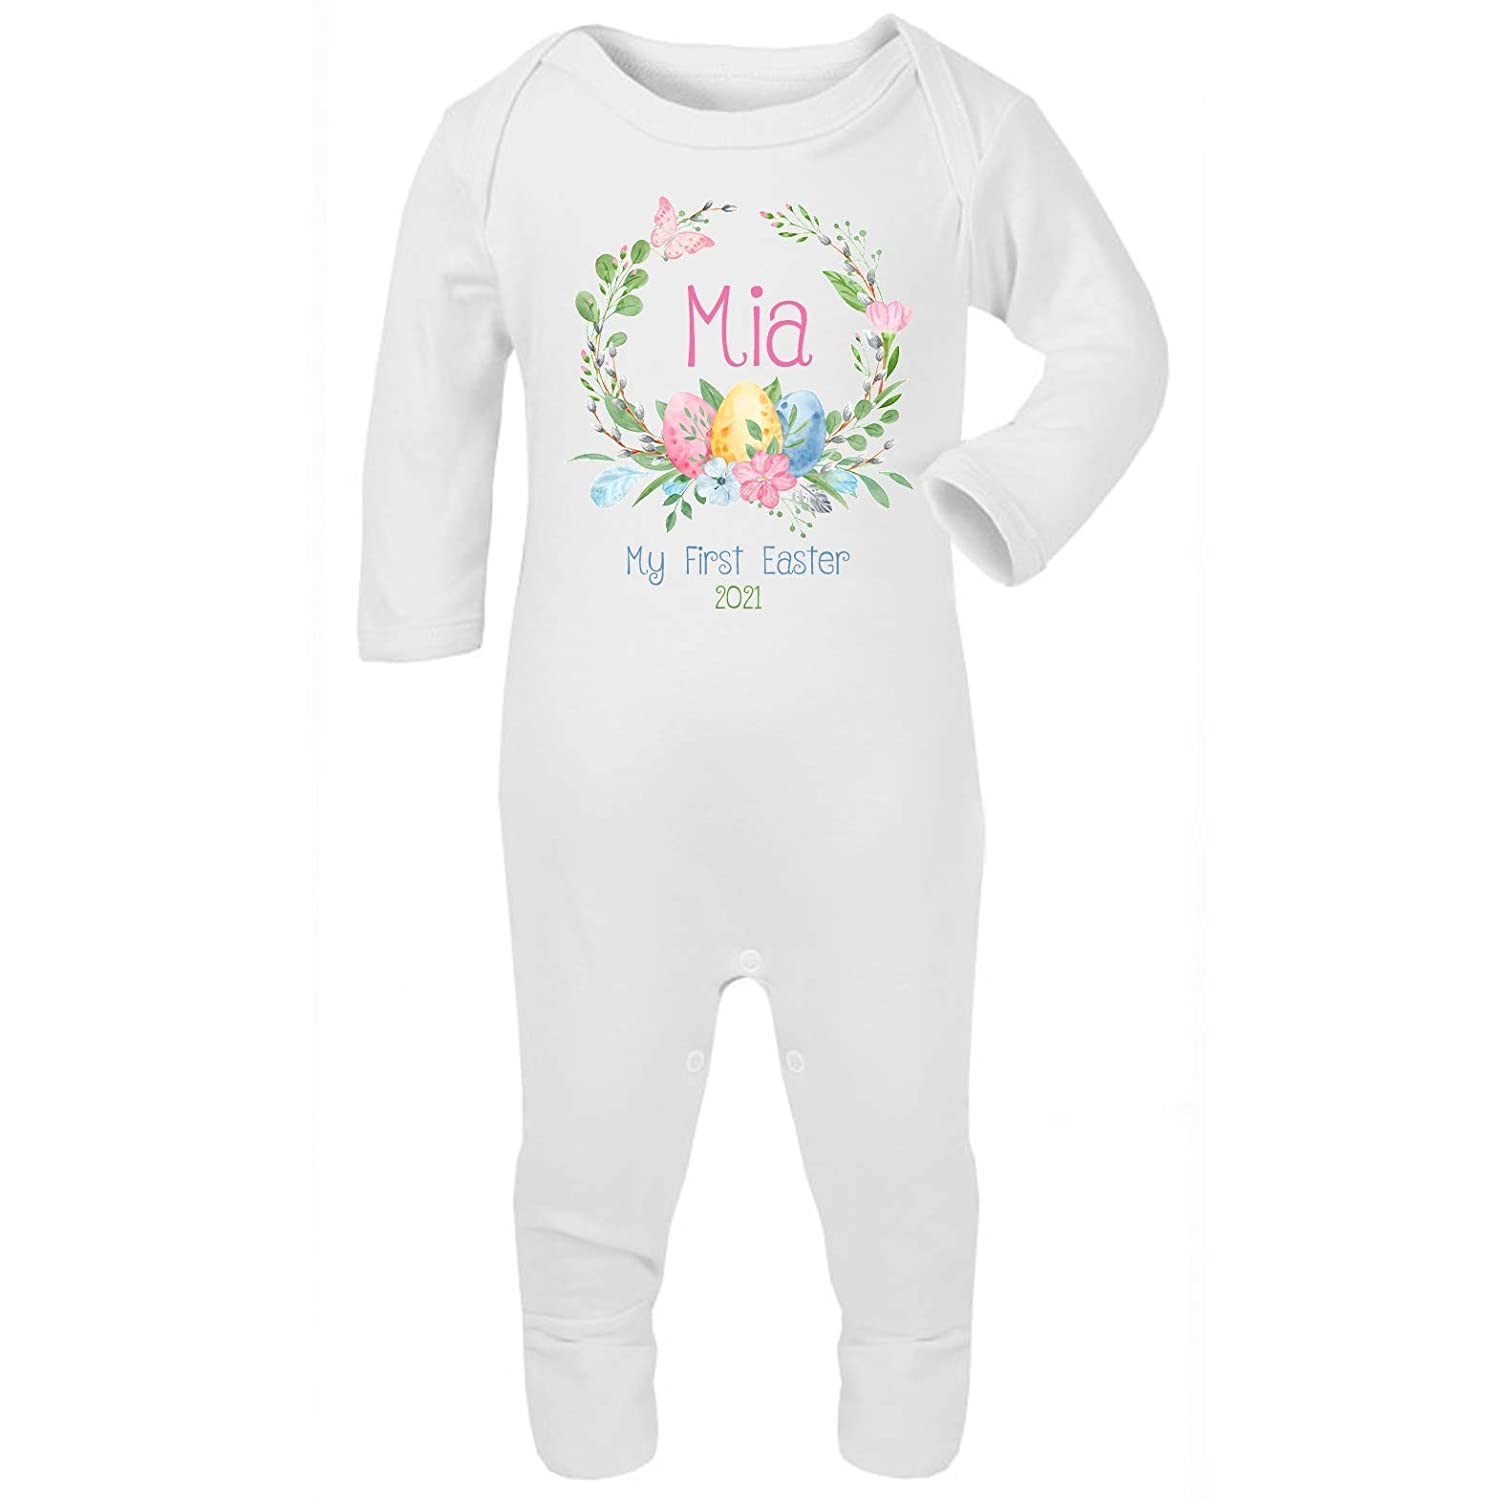 Personalised My First Easter Babygrow Baby Vest New Baby Gifts Newborn baby Gifts Personalised Babywear Baby Firsts Boys Easter Baby Outfit